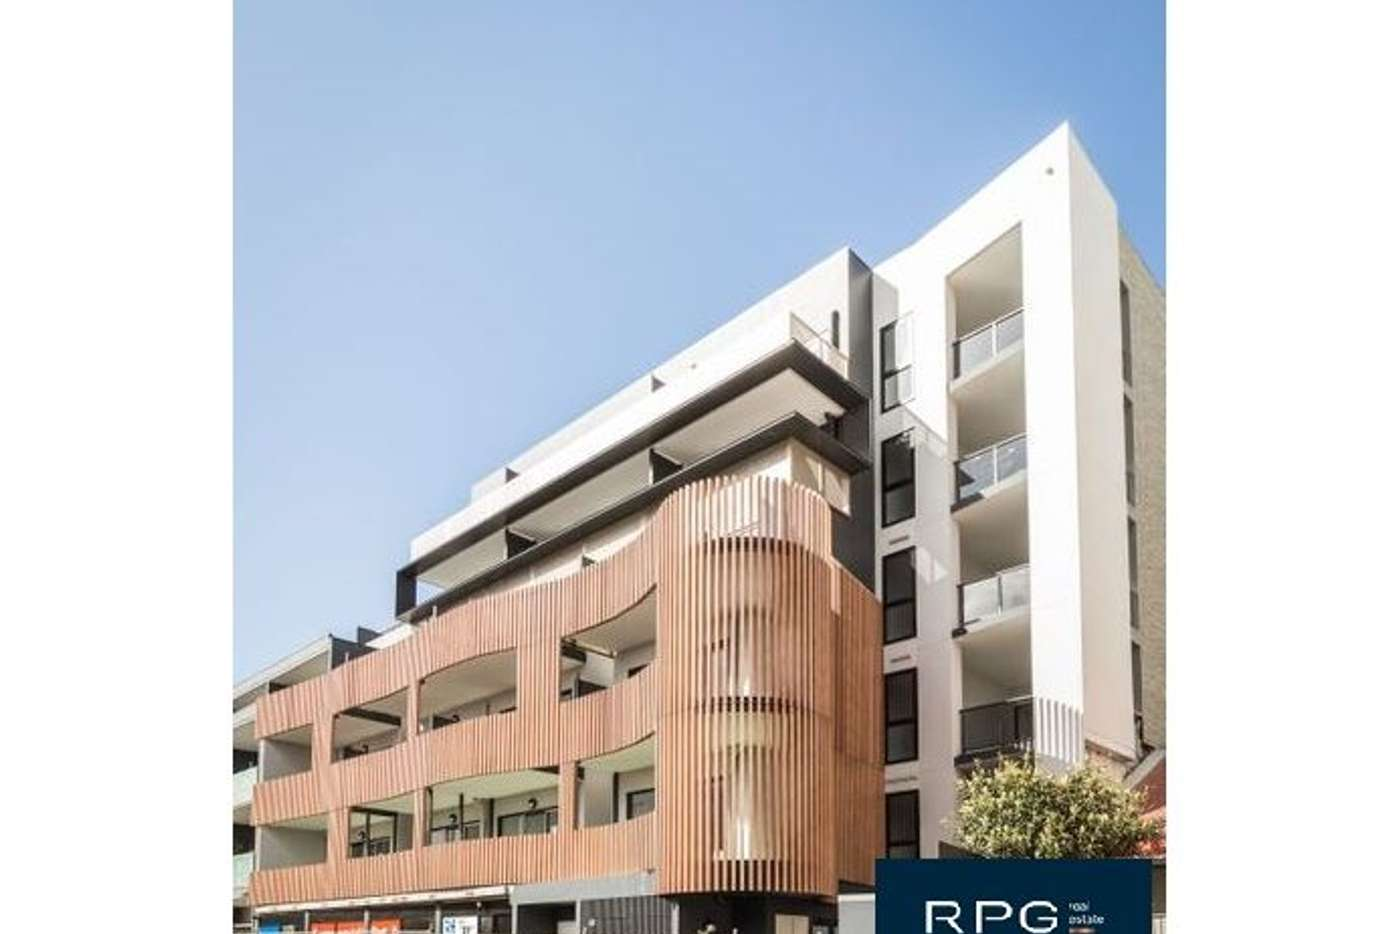 Main view of Homely apartment listing, 312/4-8 Breese Street, Brunswick VIC 3056